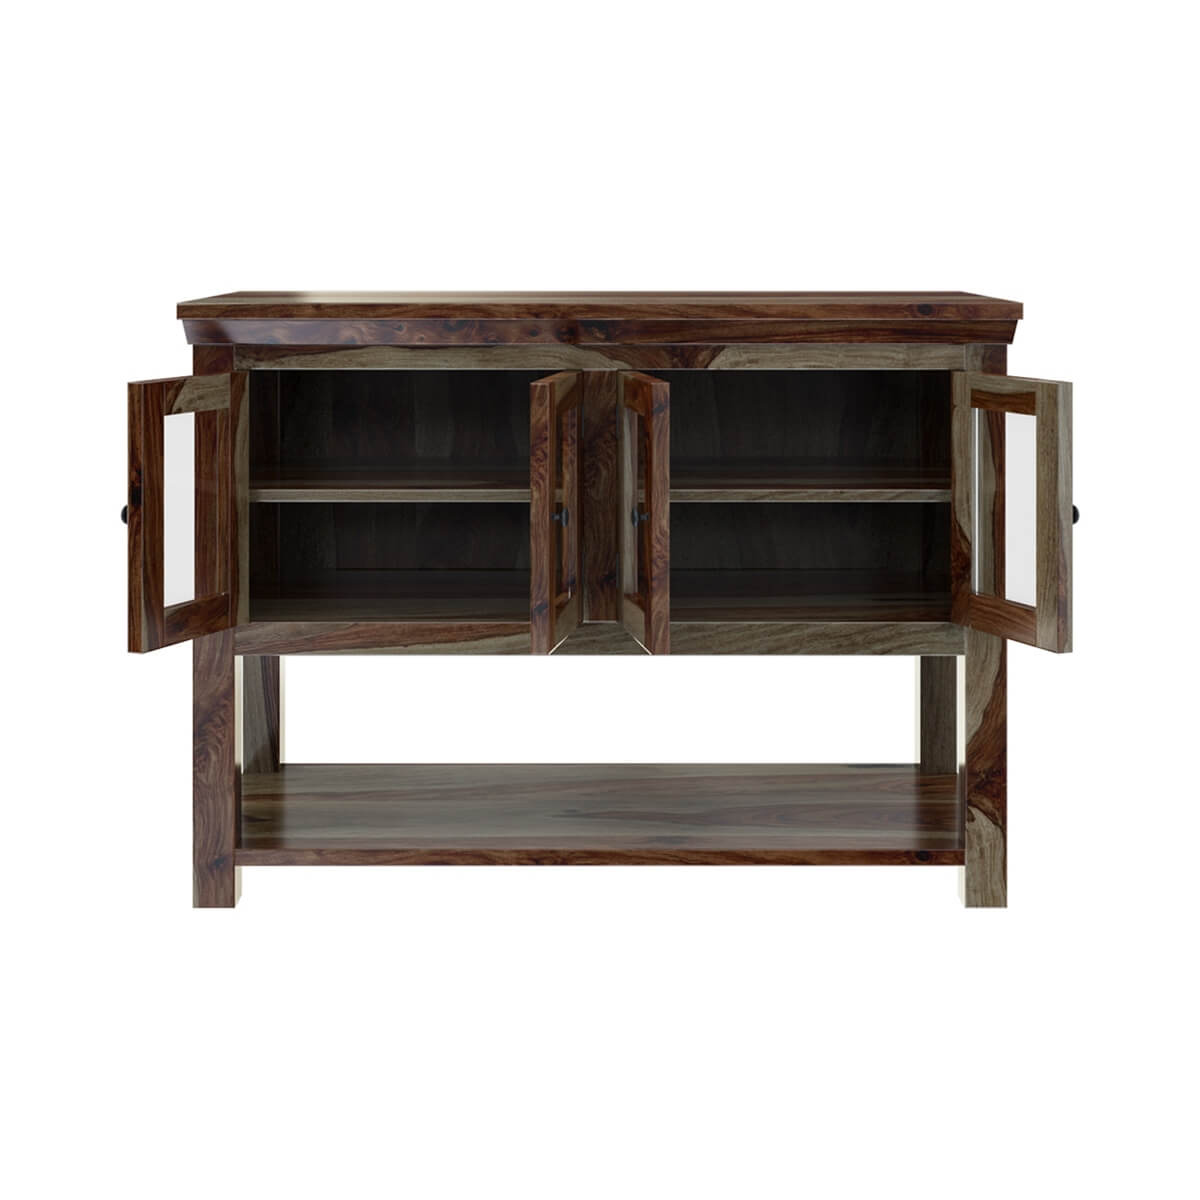 Modern rustic sierra solid wood dining buffet table